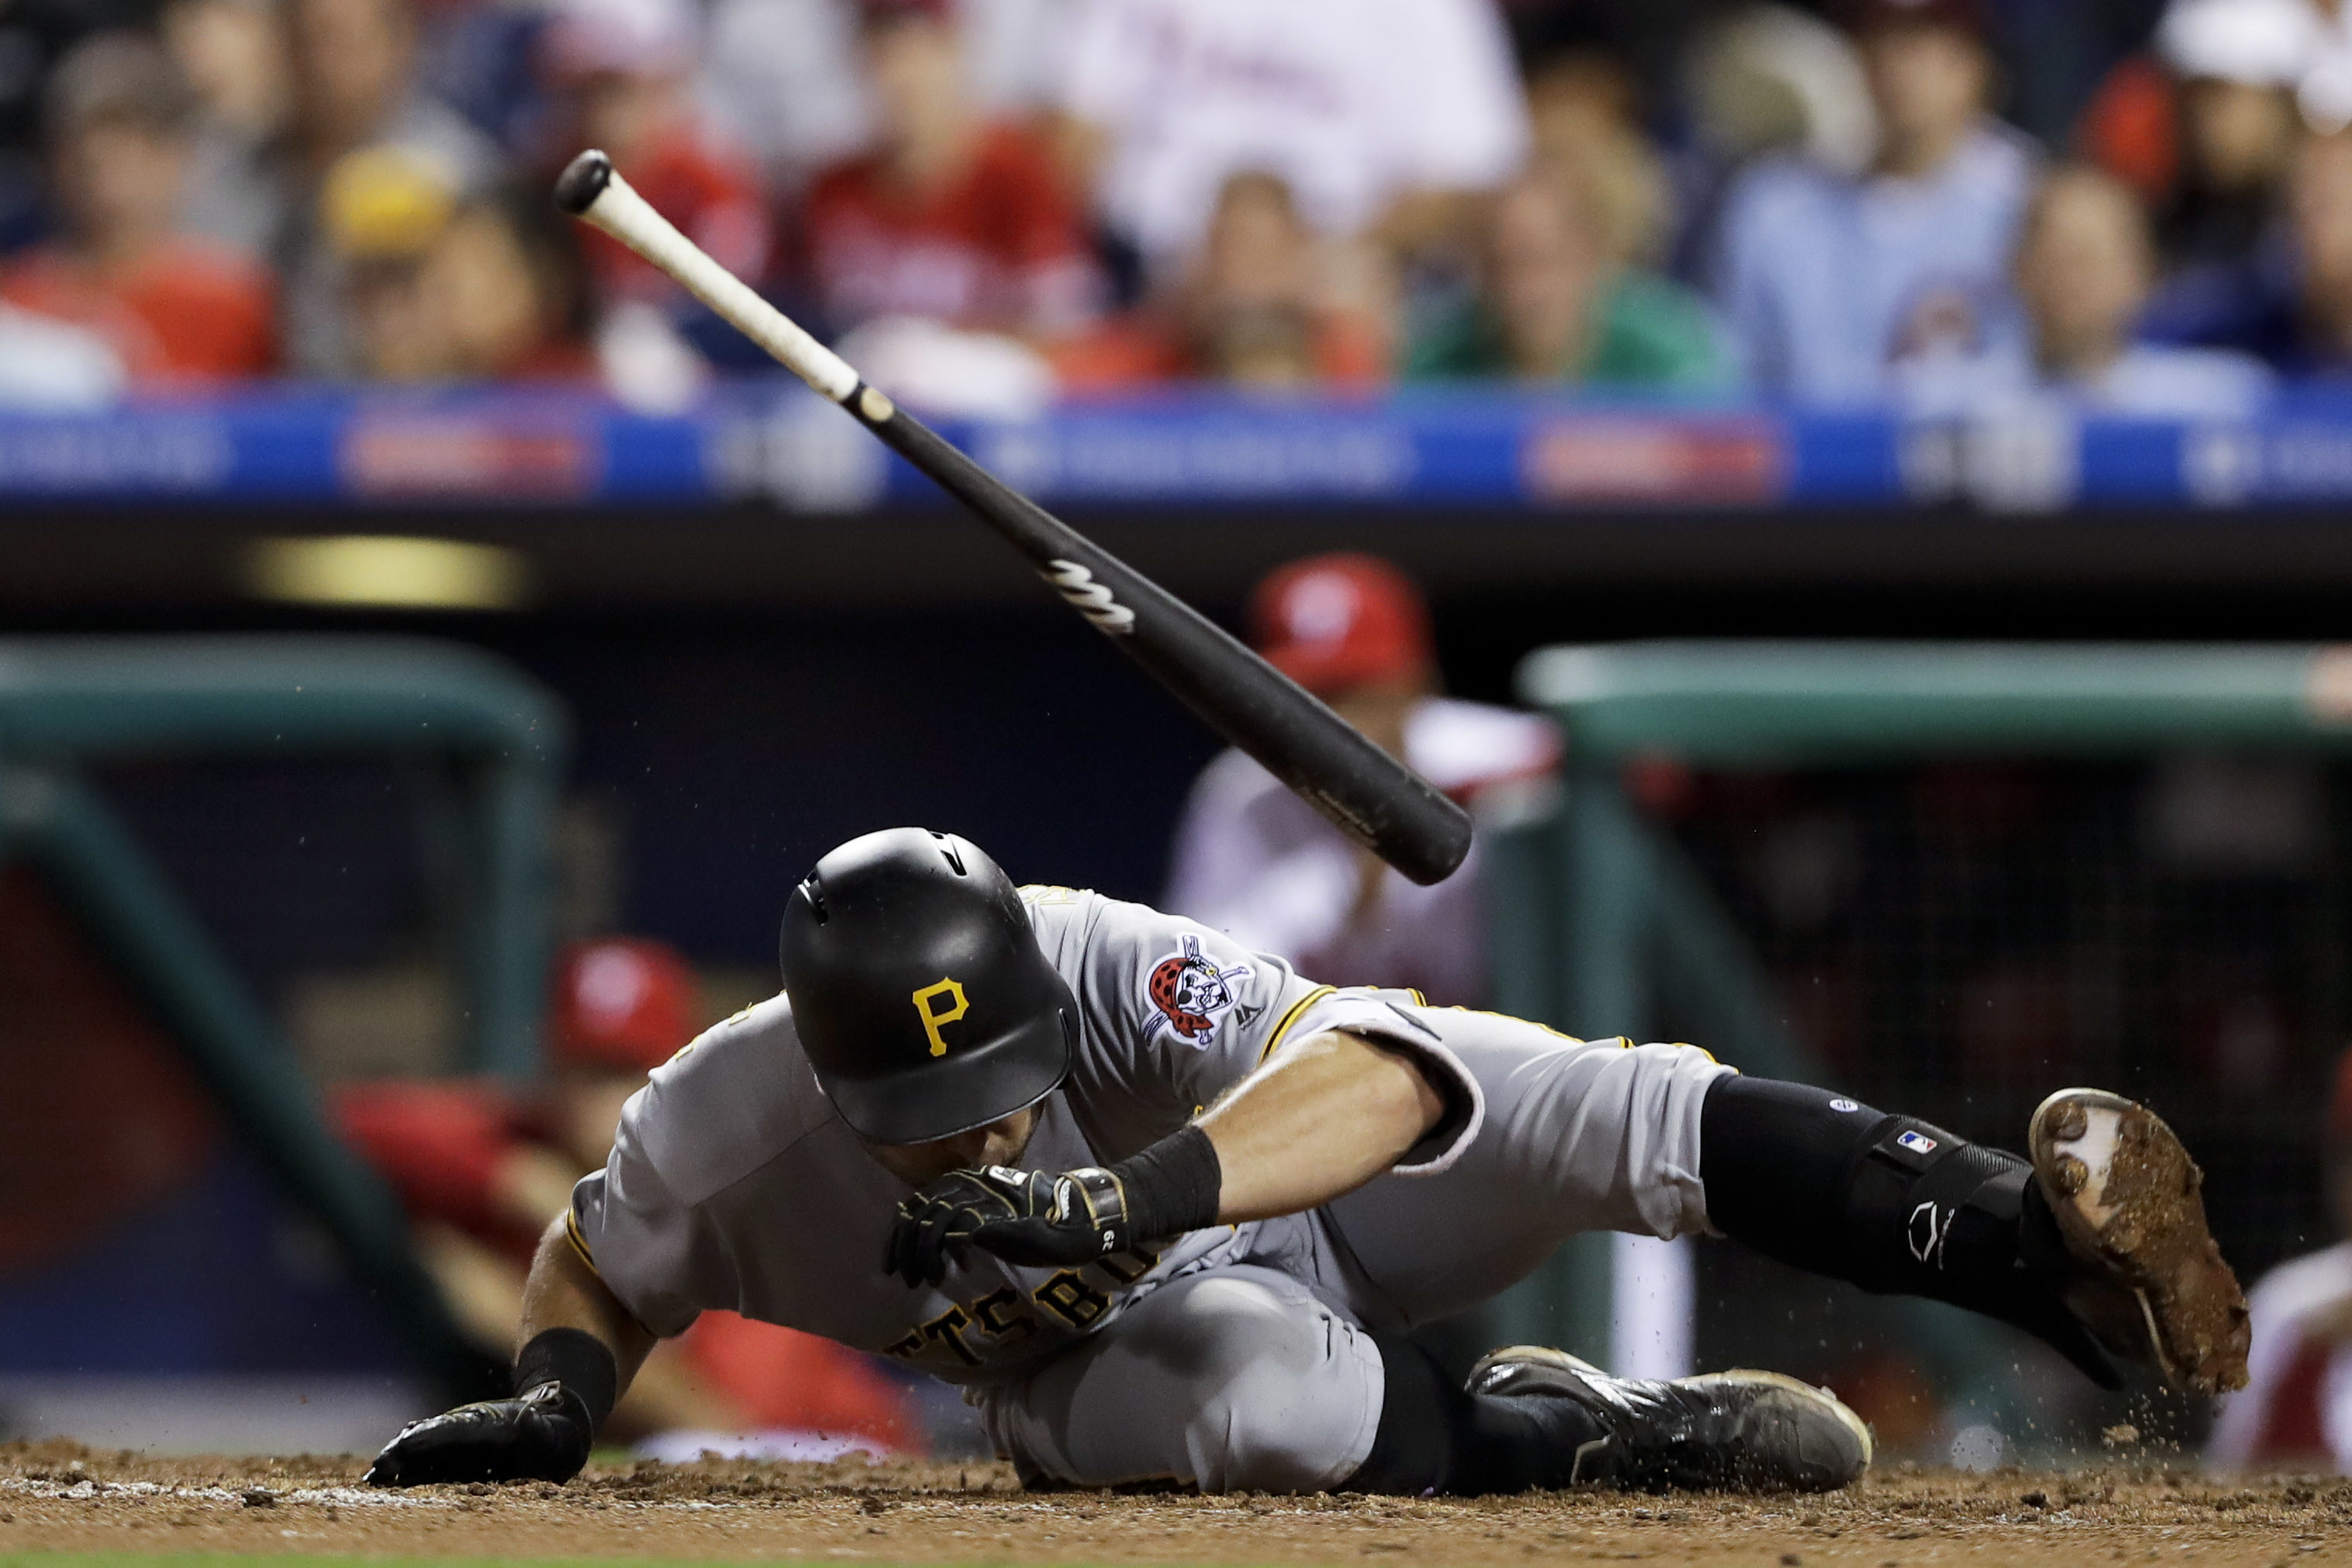 Pittsburgh Pirates' Francisco Cervelli dives to avoid a pitch from Philadelphia Phillies' Michael Mariot during the seventh inning of a baseball game, Tuesday, Sept. 13, 2016, in Philadelphia. Pittsburgh won 5-3. (AP Photo/Matt Slocum)